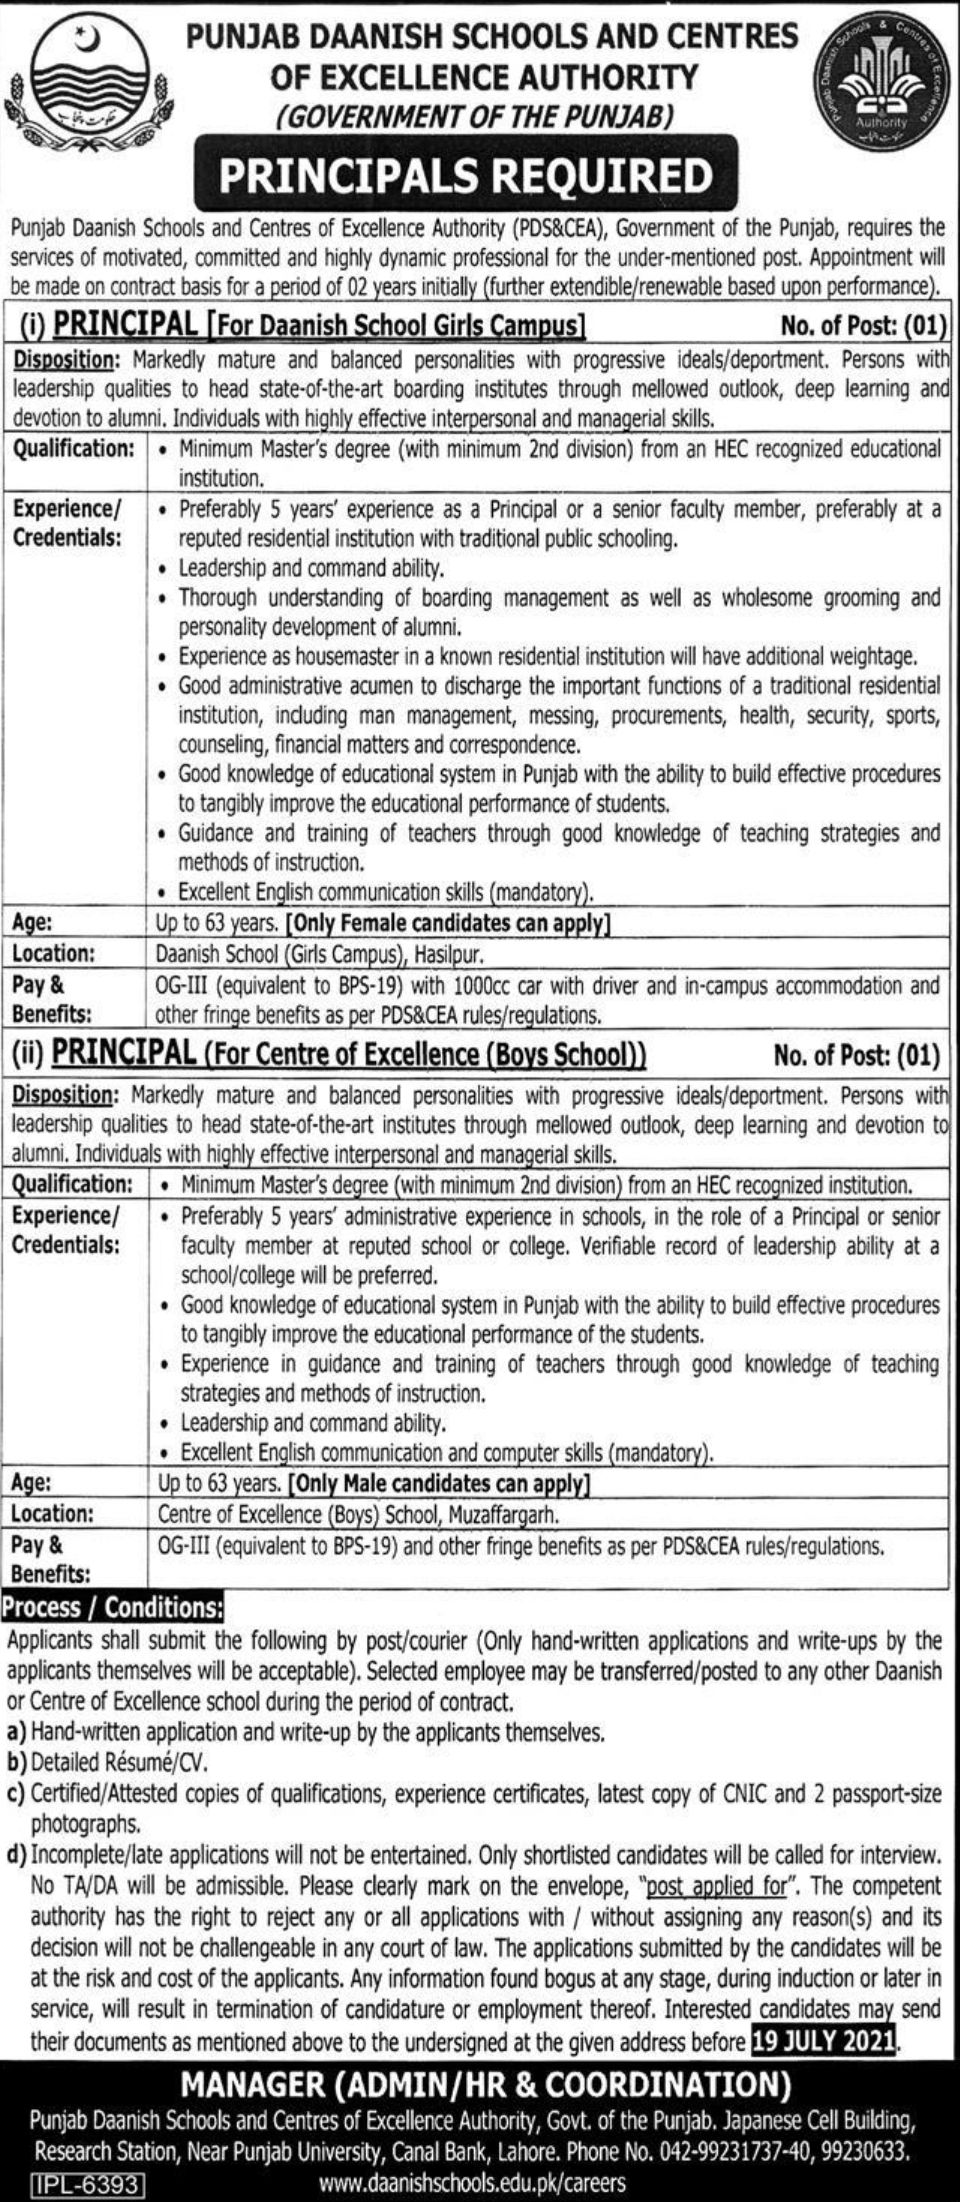 Punjab Daanish Schools and Centres of Excellence Authority Vacancies 2021 3